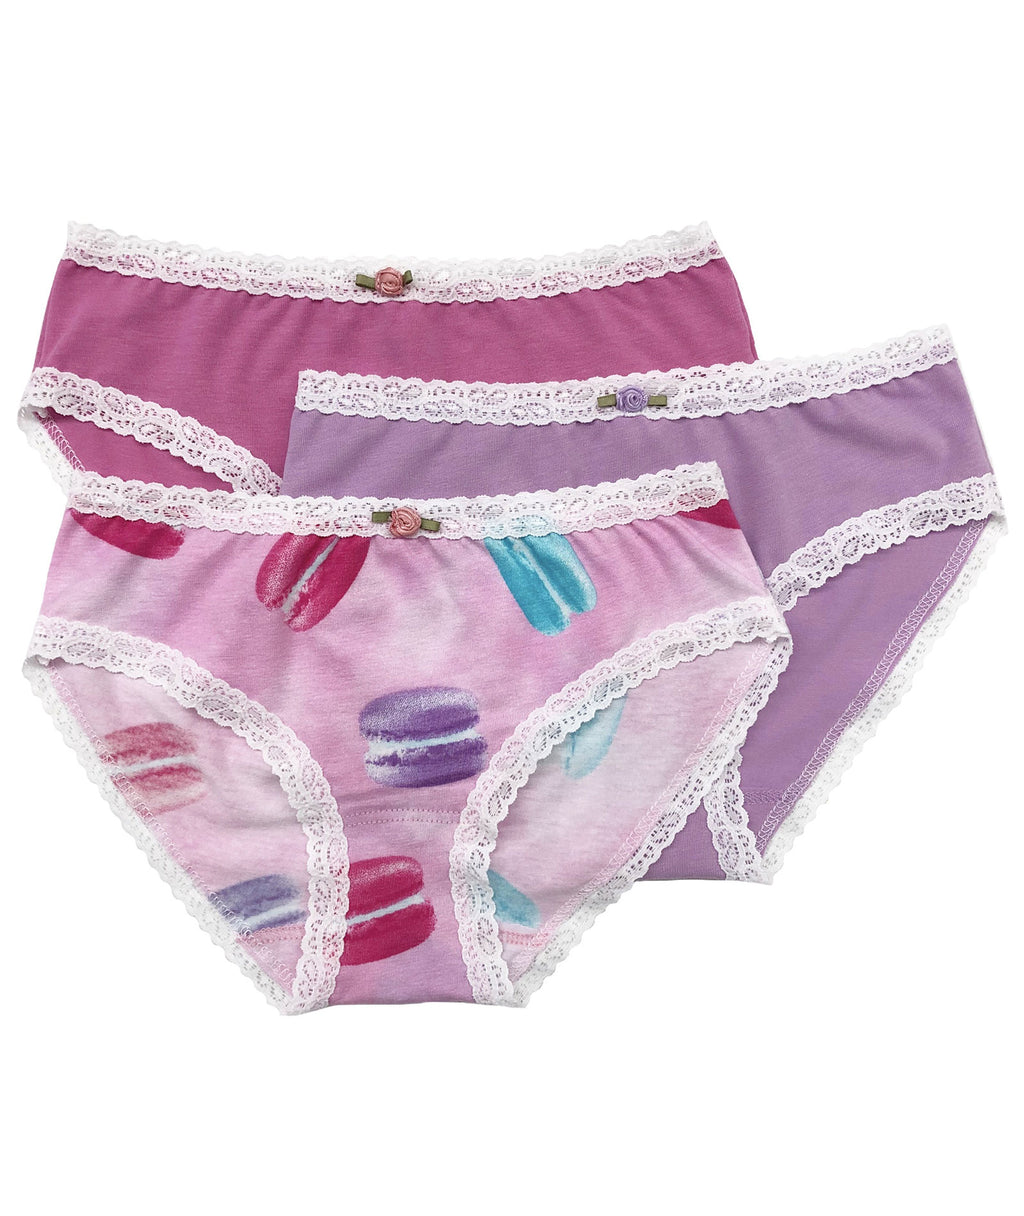 Esme Girls Pink Macaroon Panty Set